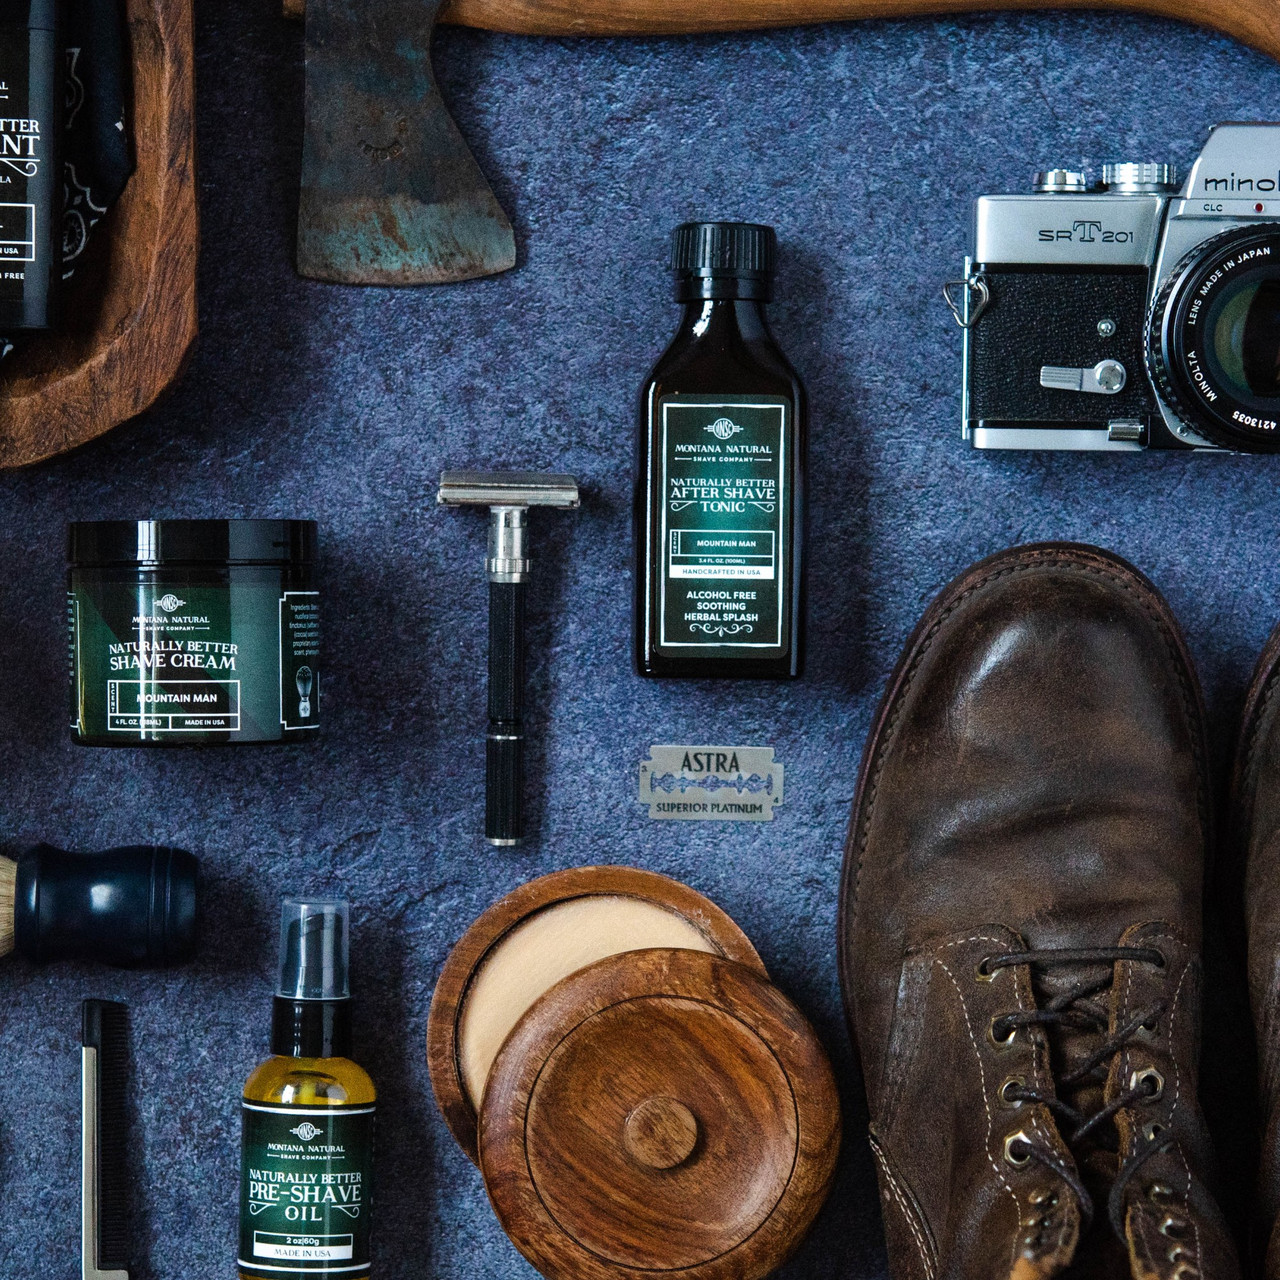 Black Timber Pump Shave Cream - Montana Natural Shave Company